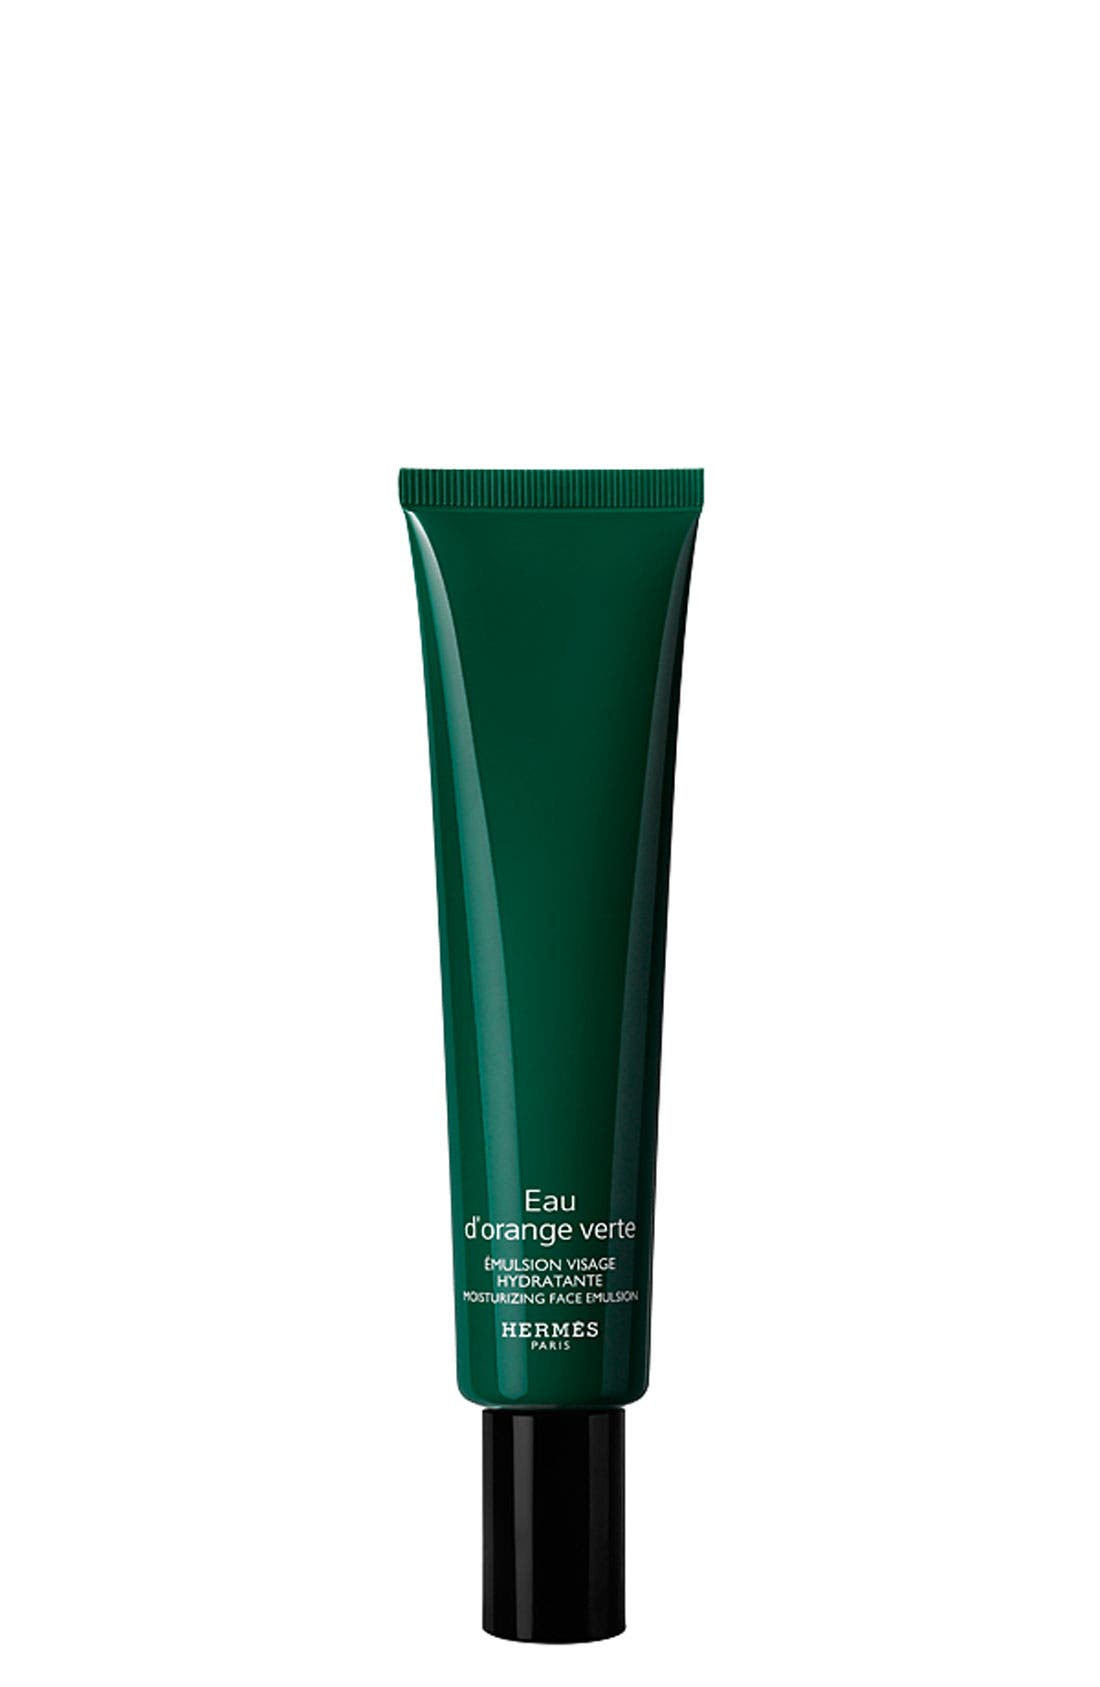 Eau d'orange verte - Moisturizing face emulsion,                             Main thumbnail 1, color,                             NO COLOR